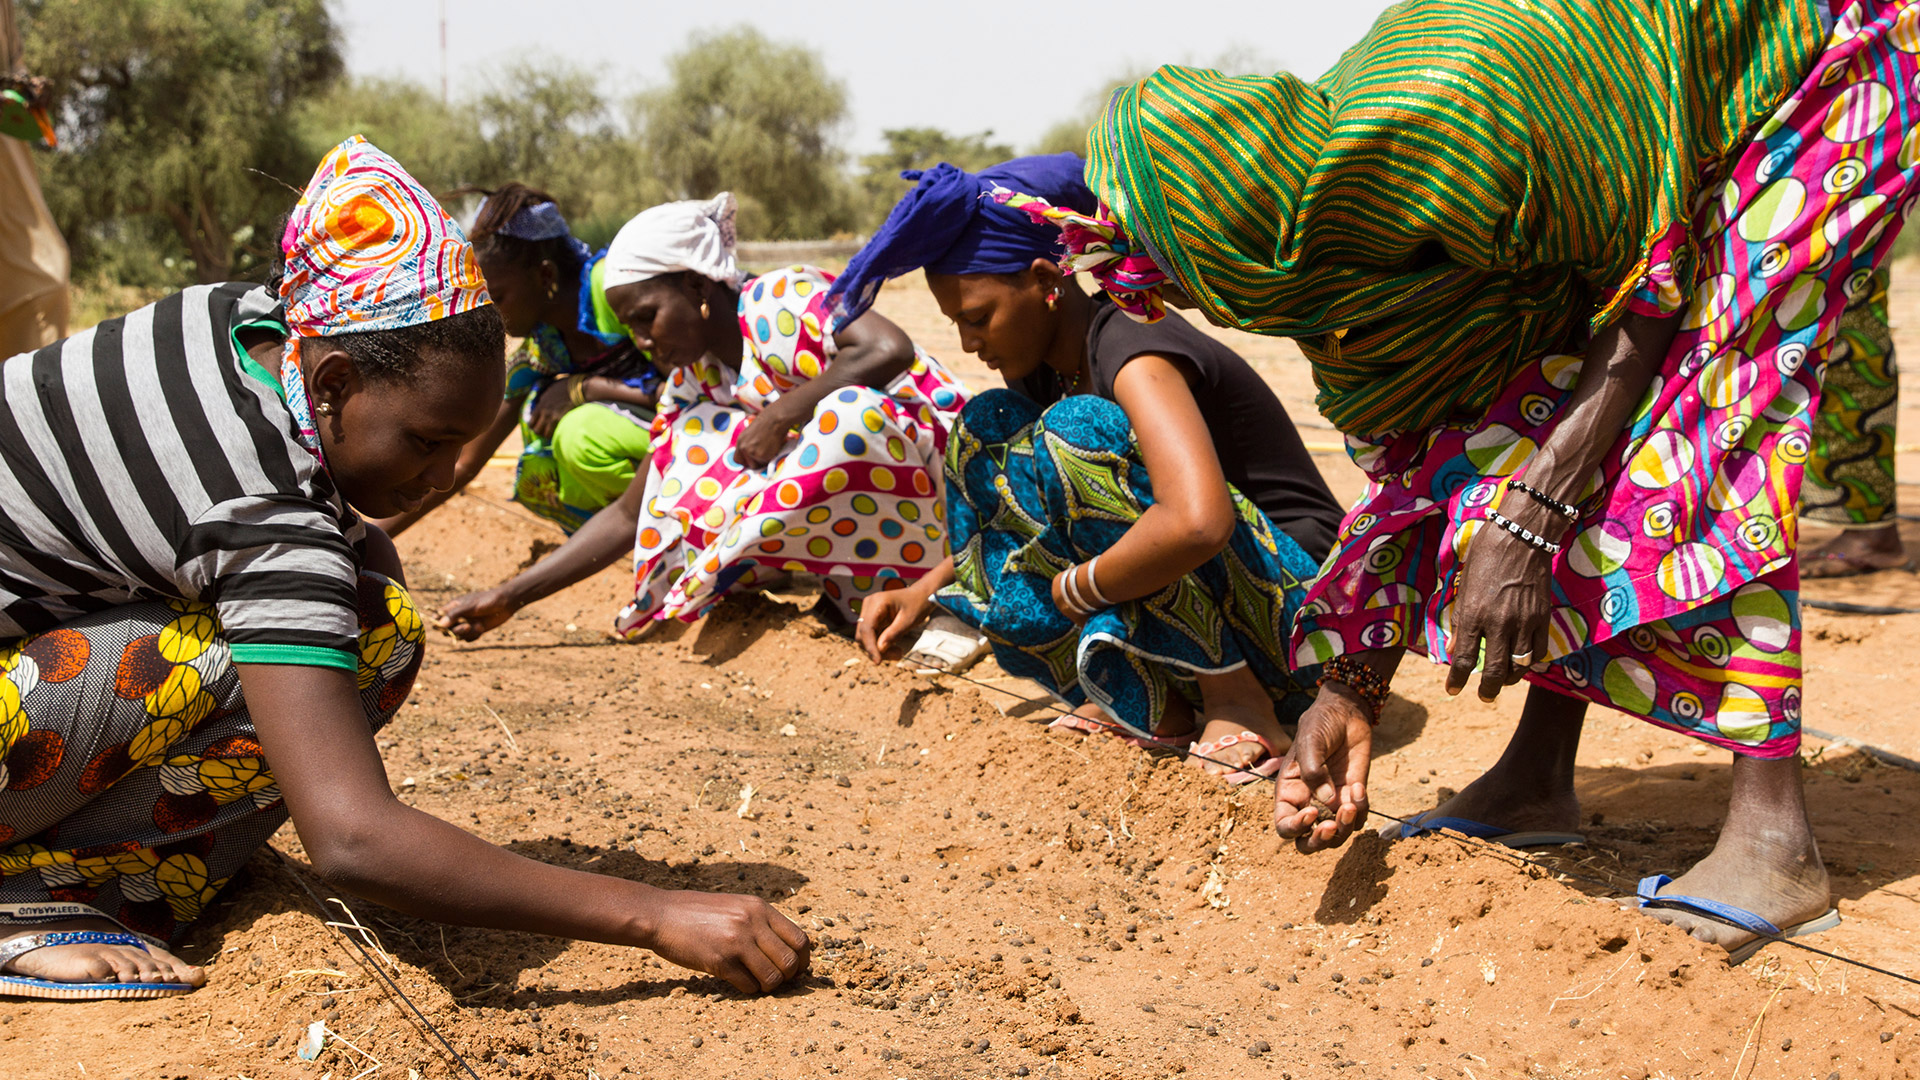 A few people in Africa are bending on the ground and planting saplings in the soil for the Great Green Wall